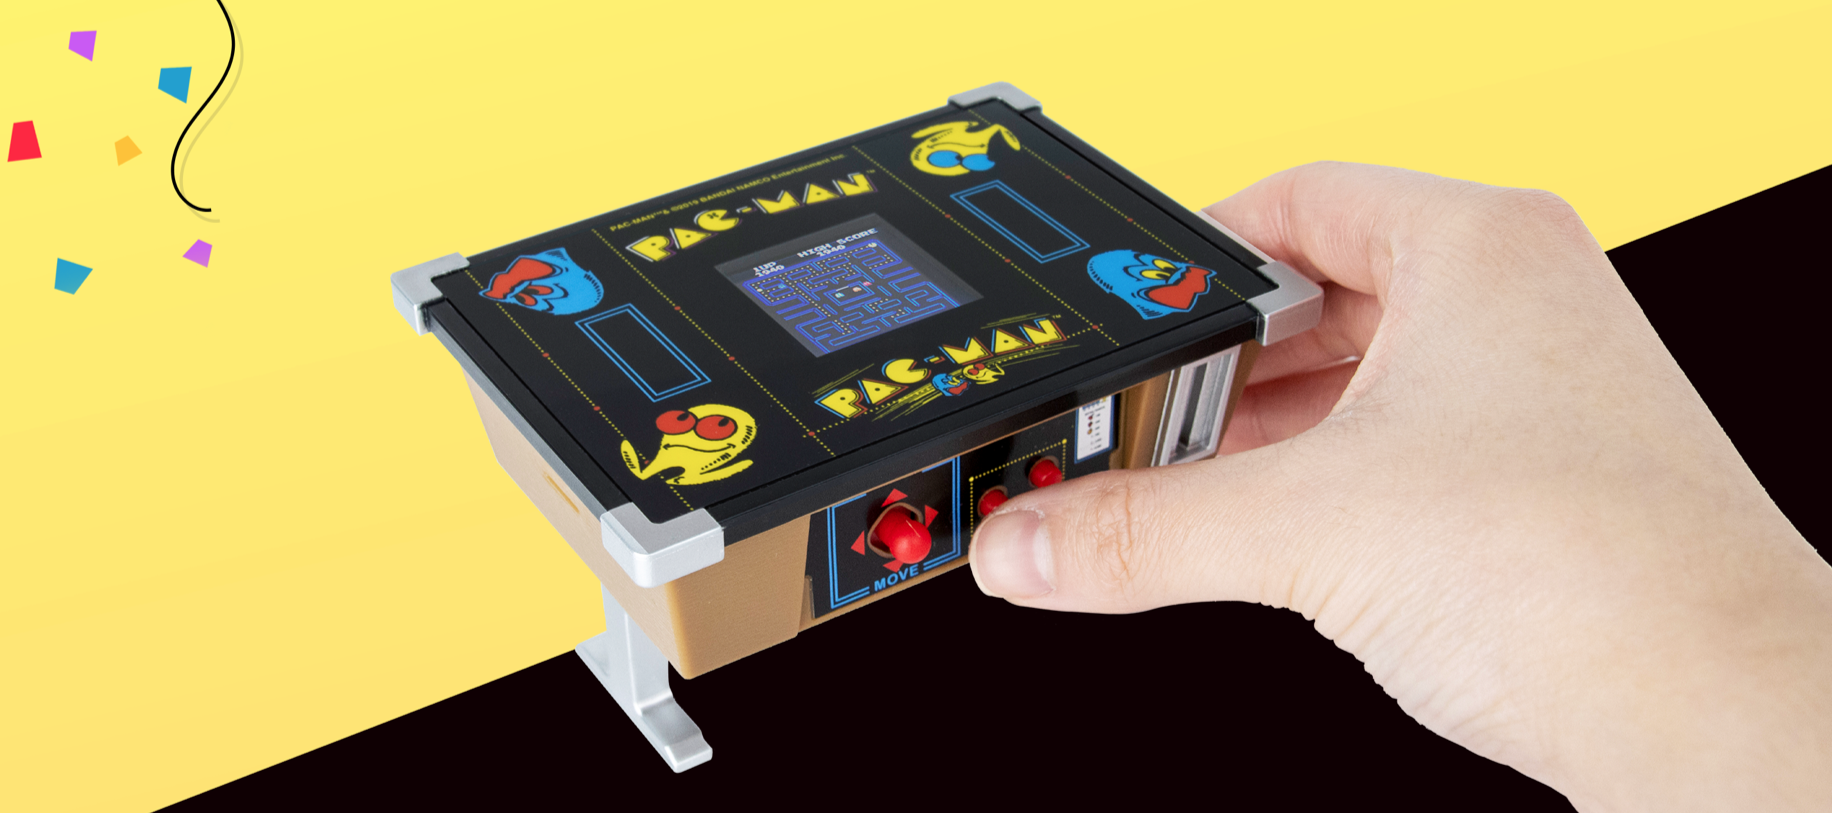 Pac-Man arcade tabletop